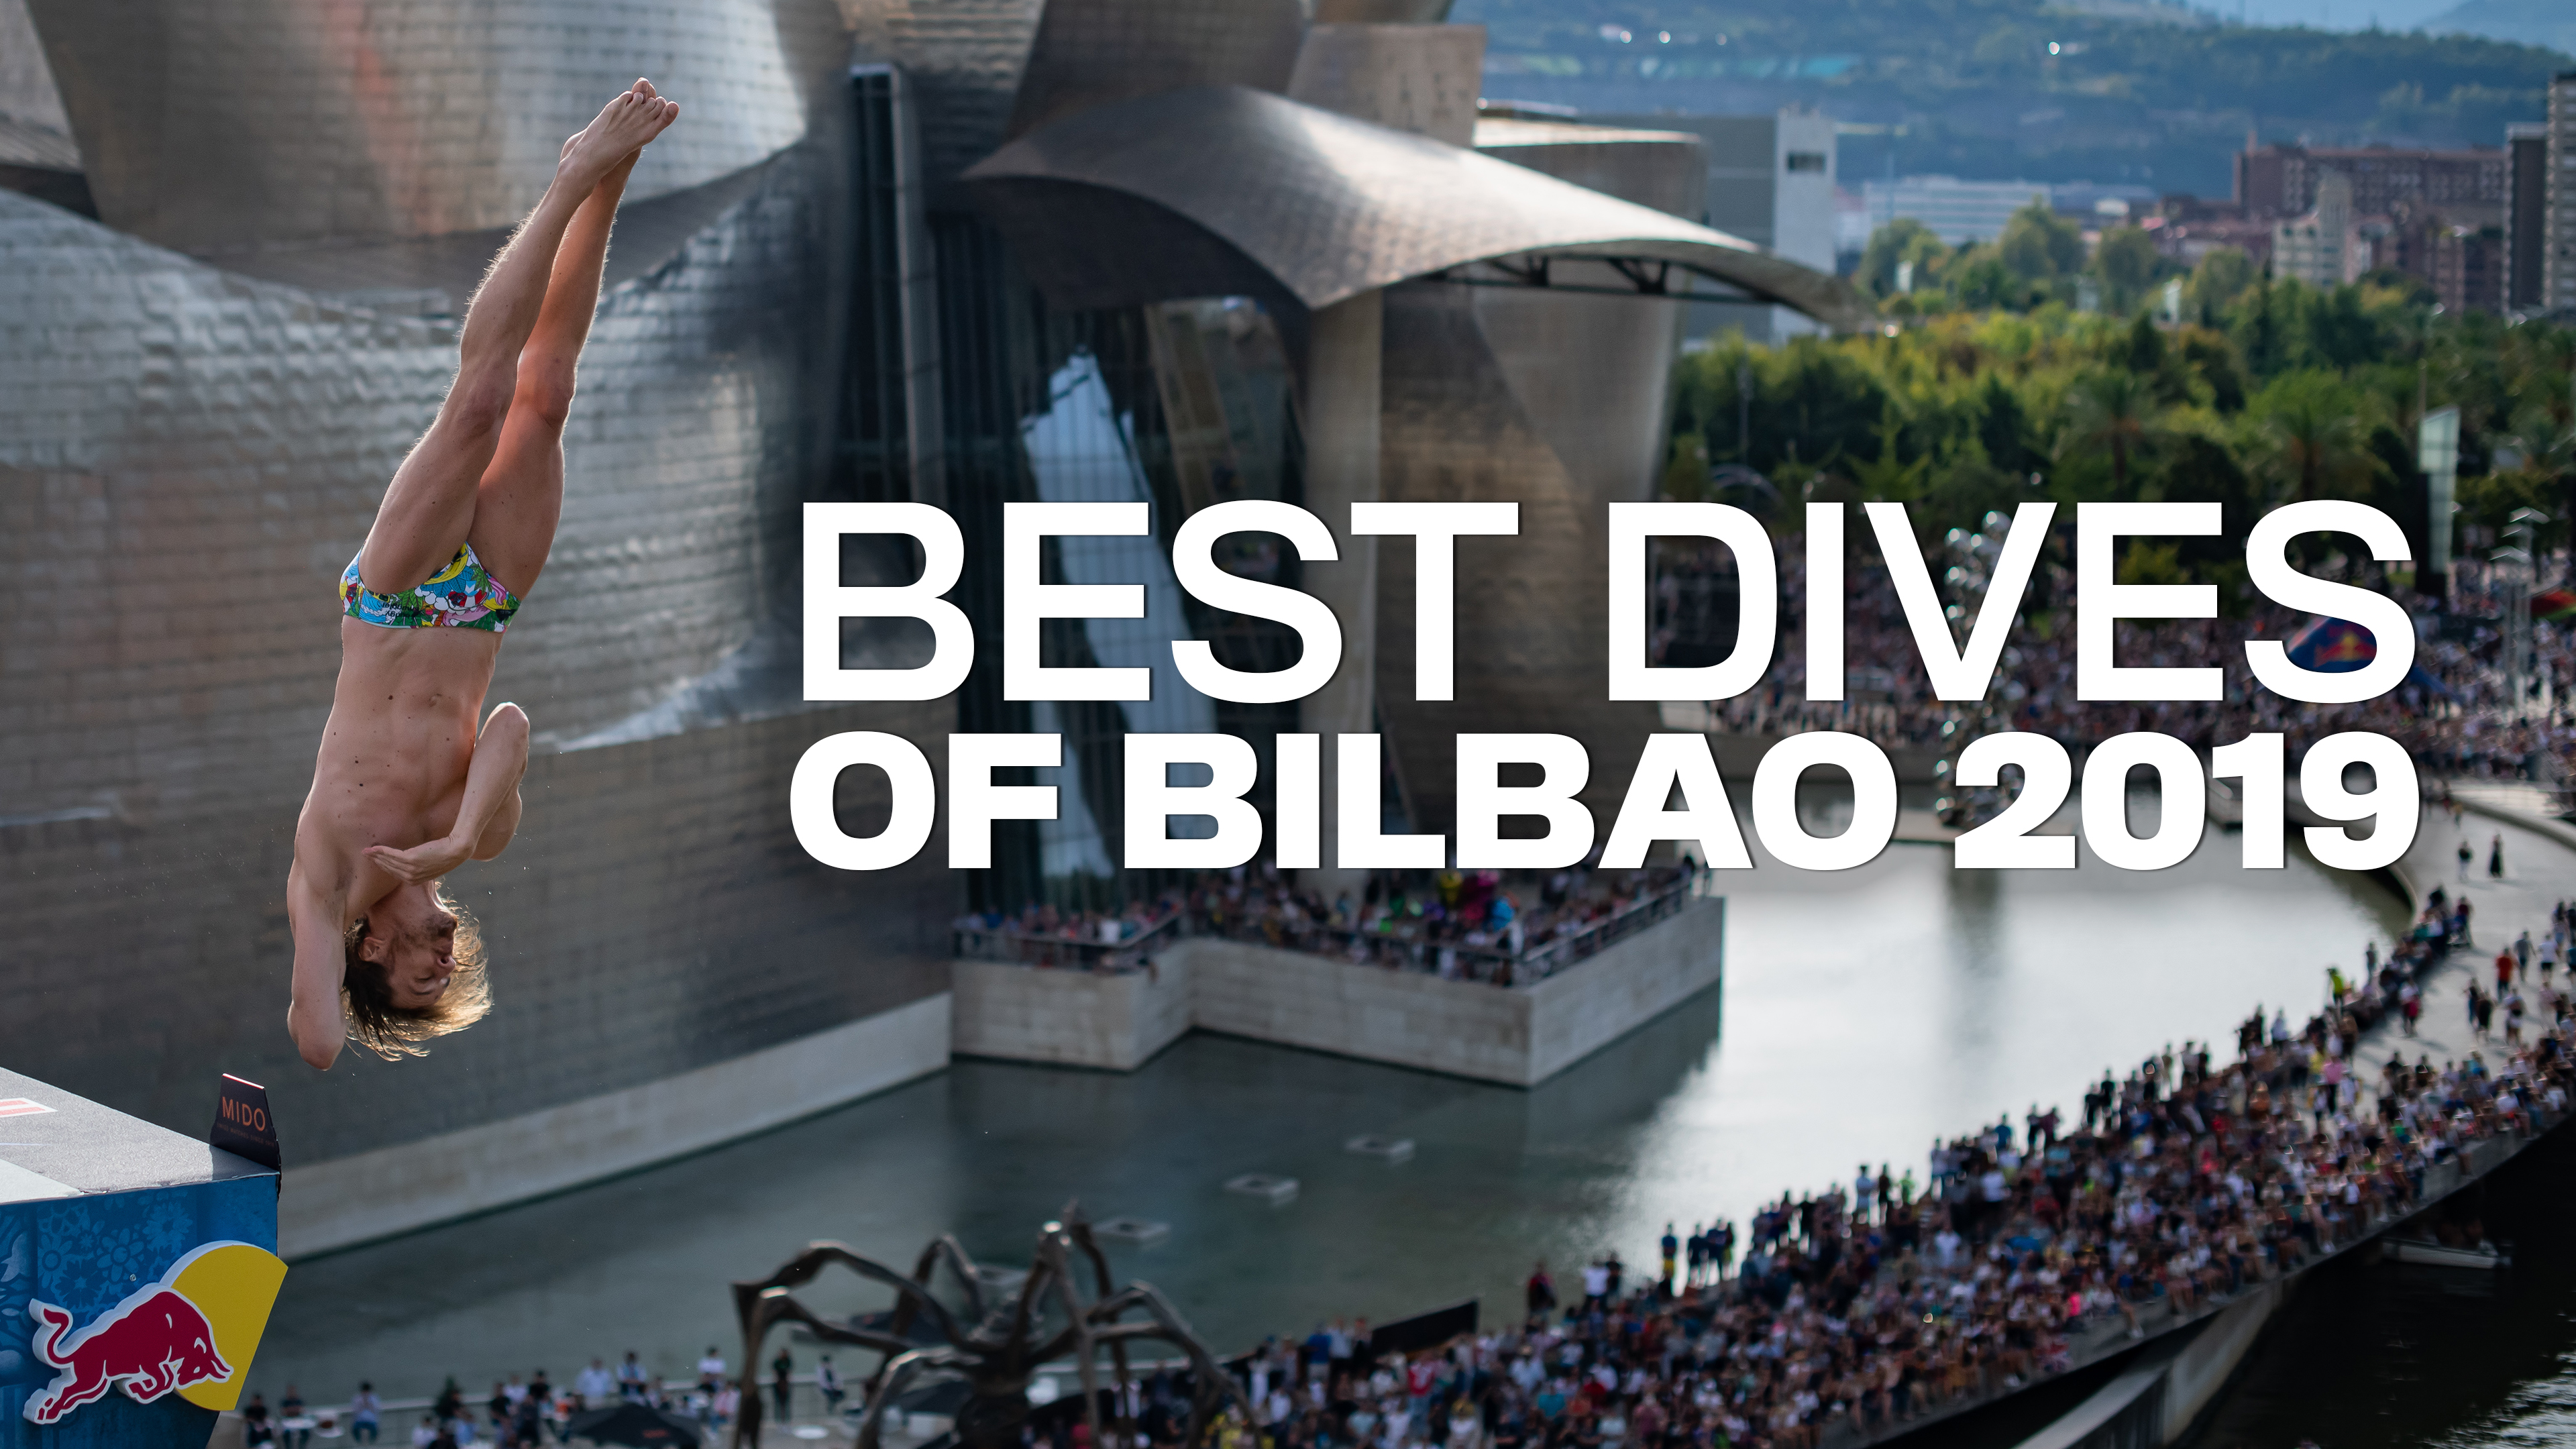 Best dives of Bilbao 2019